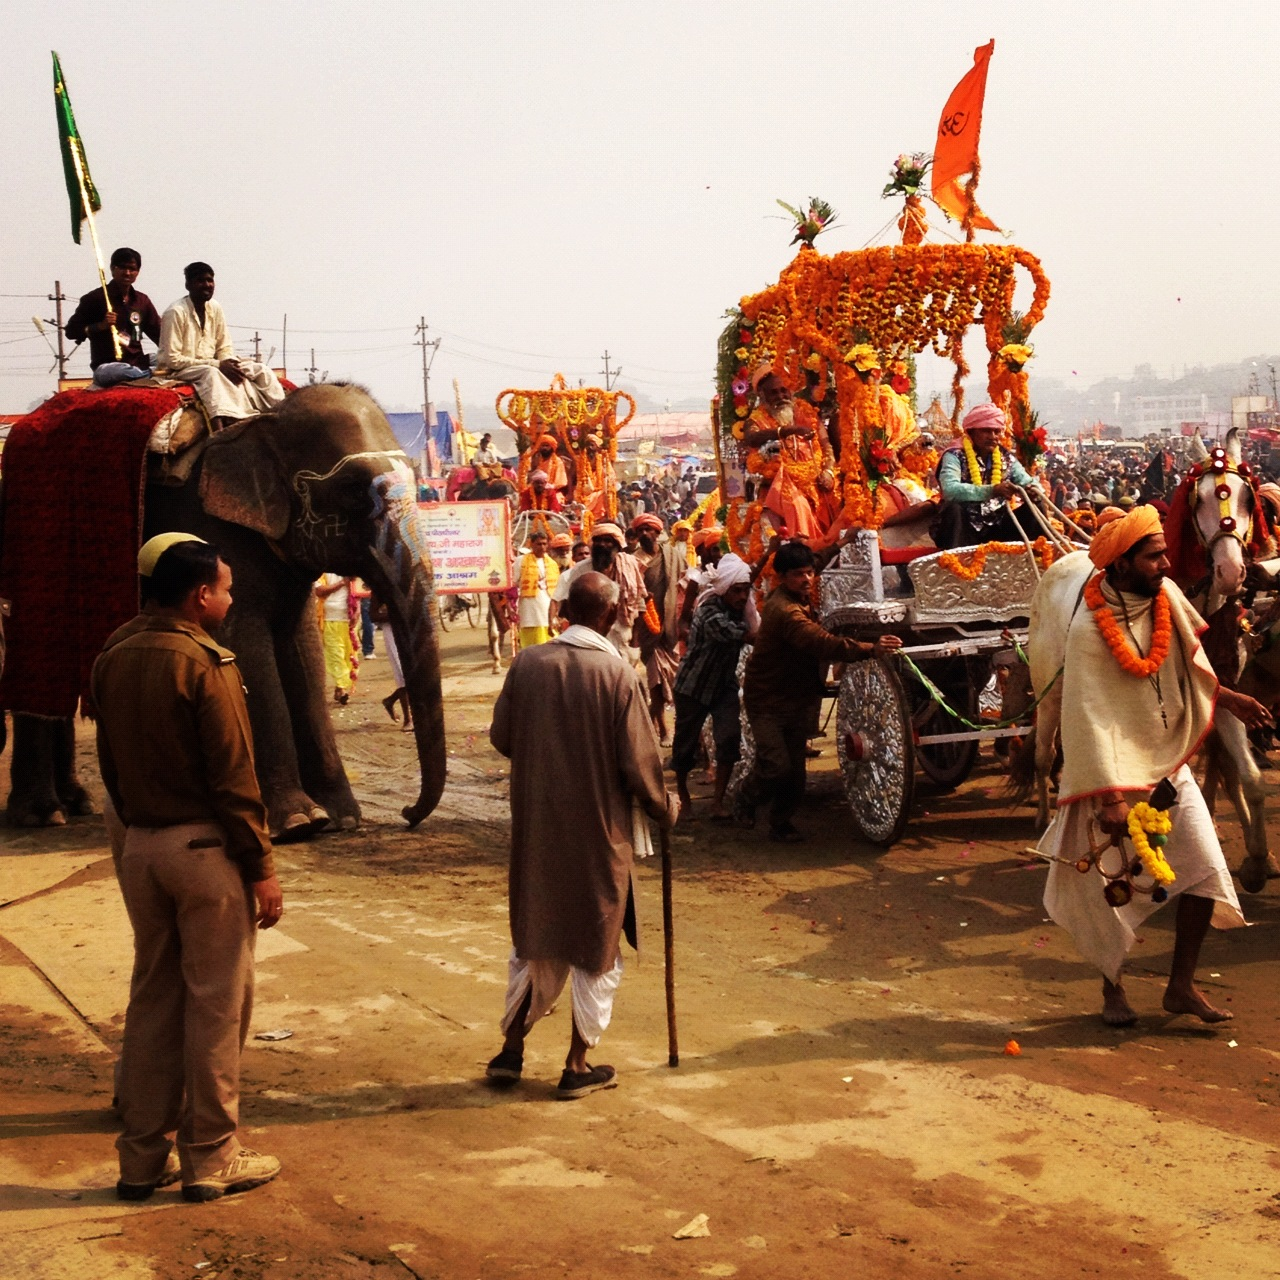 An ashram parades with elephants and Sadhus in chariots